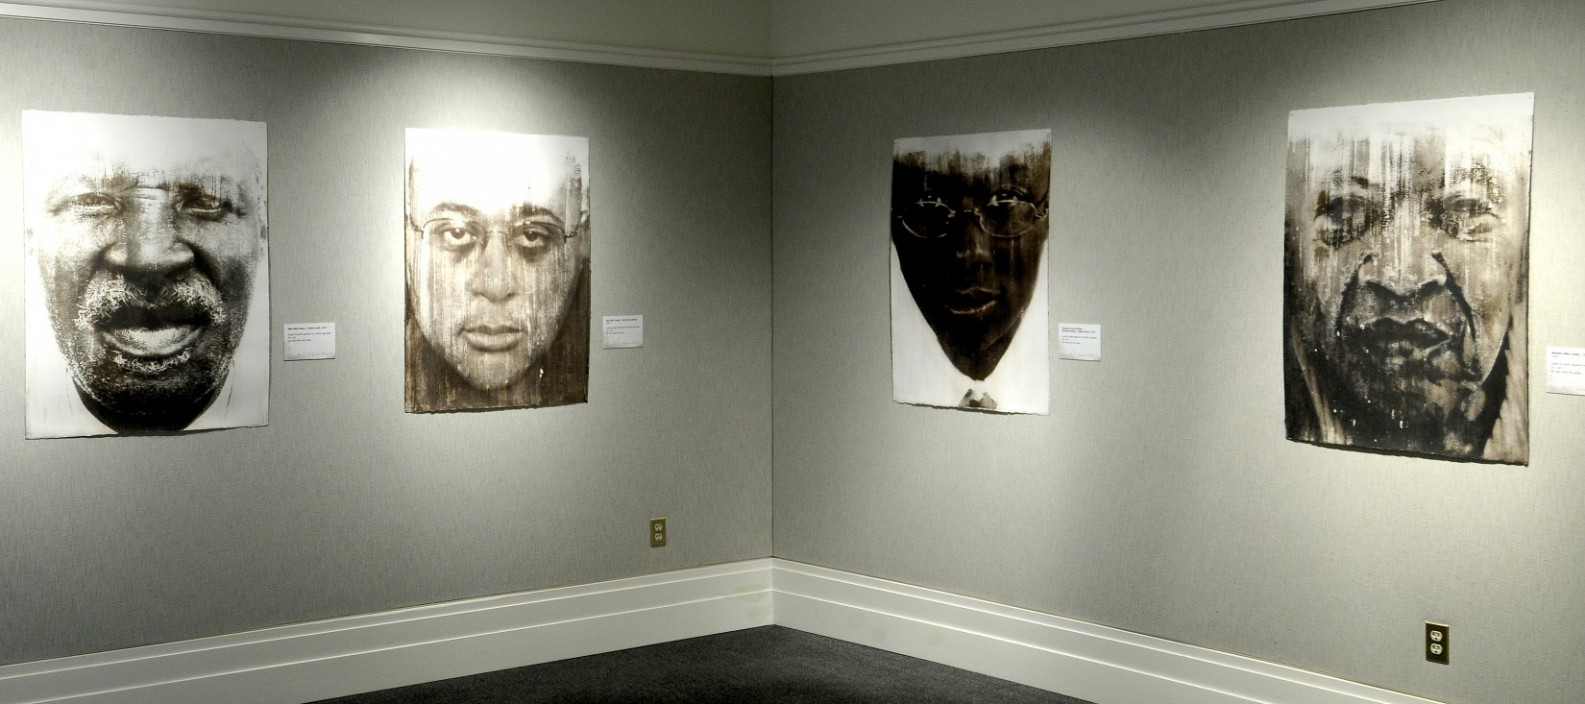 Installation view.  Dust Shaped Hearts: Photographs by Donald E. Camp.  January 18, 2011 – April 17, 2011.